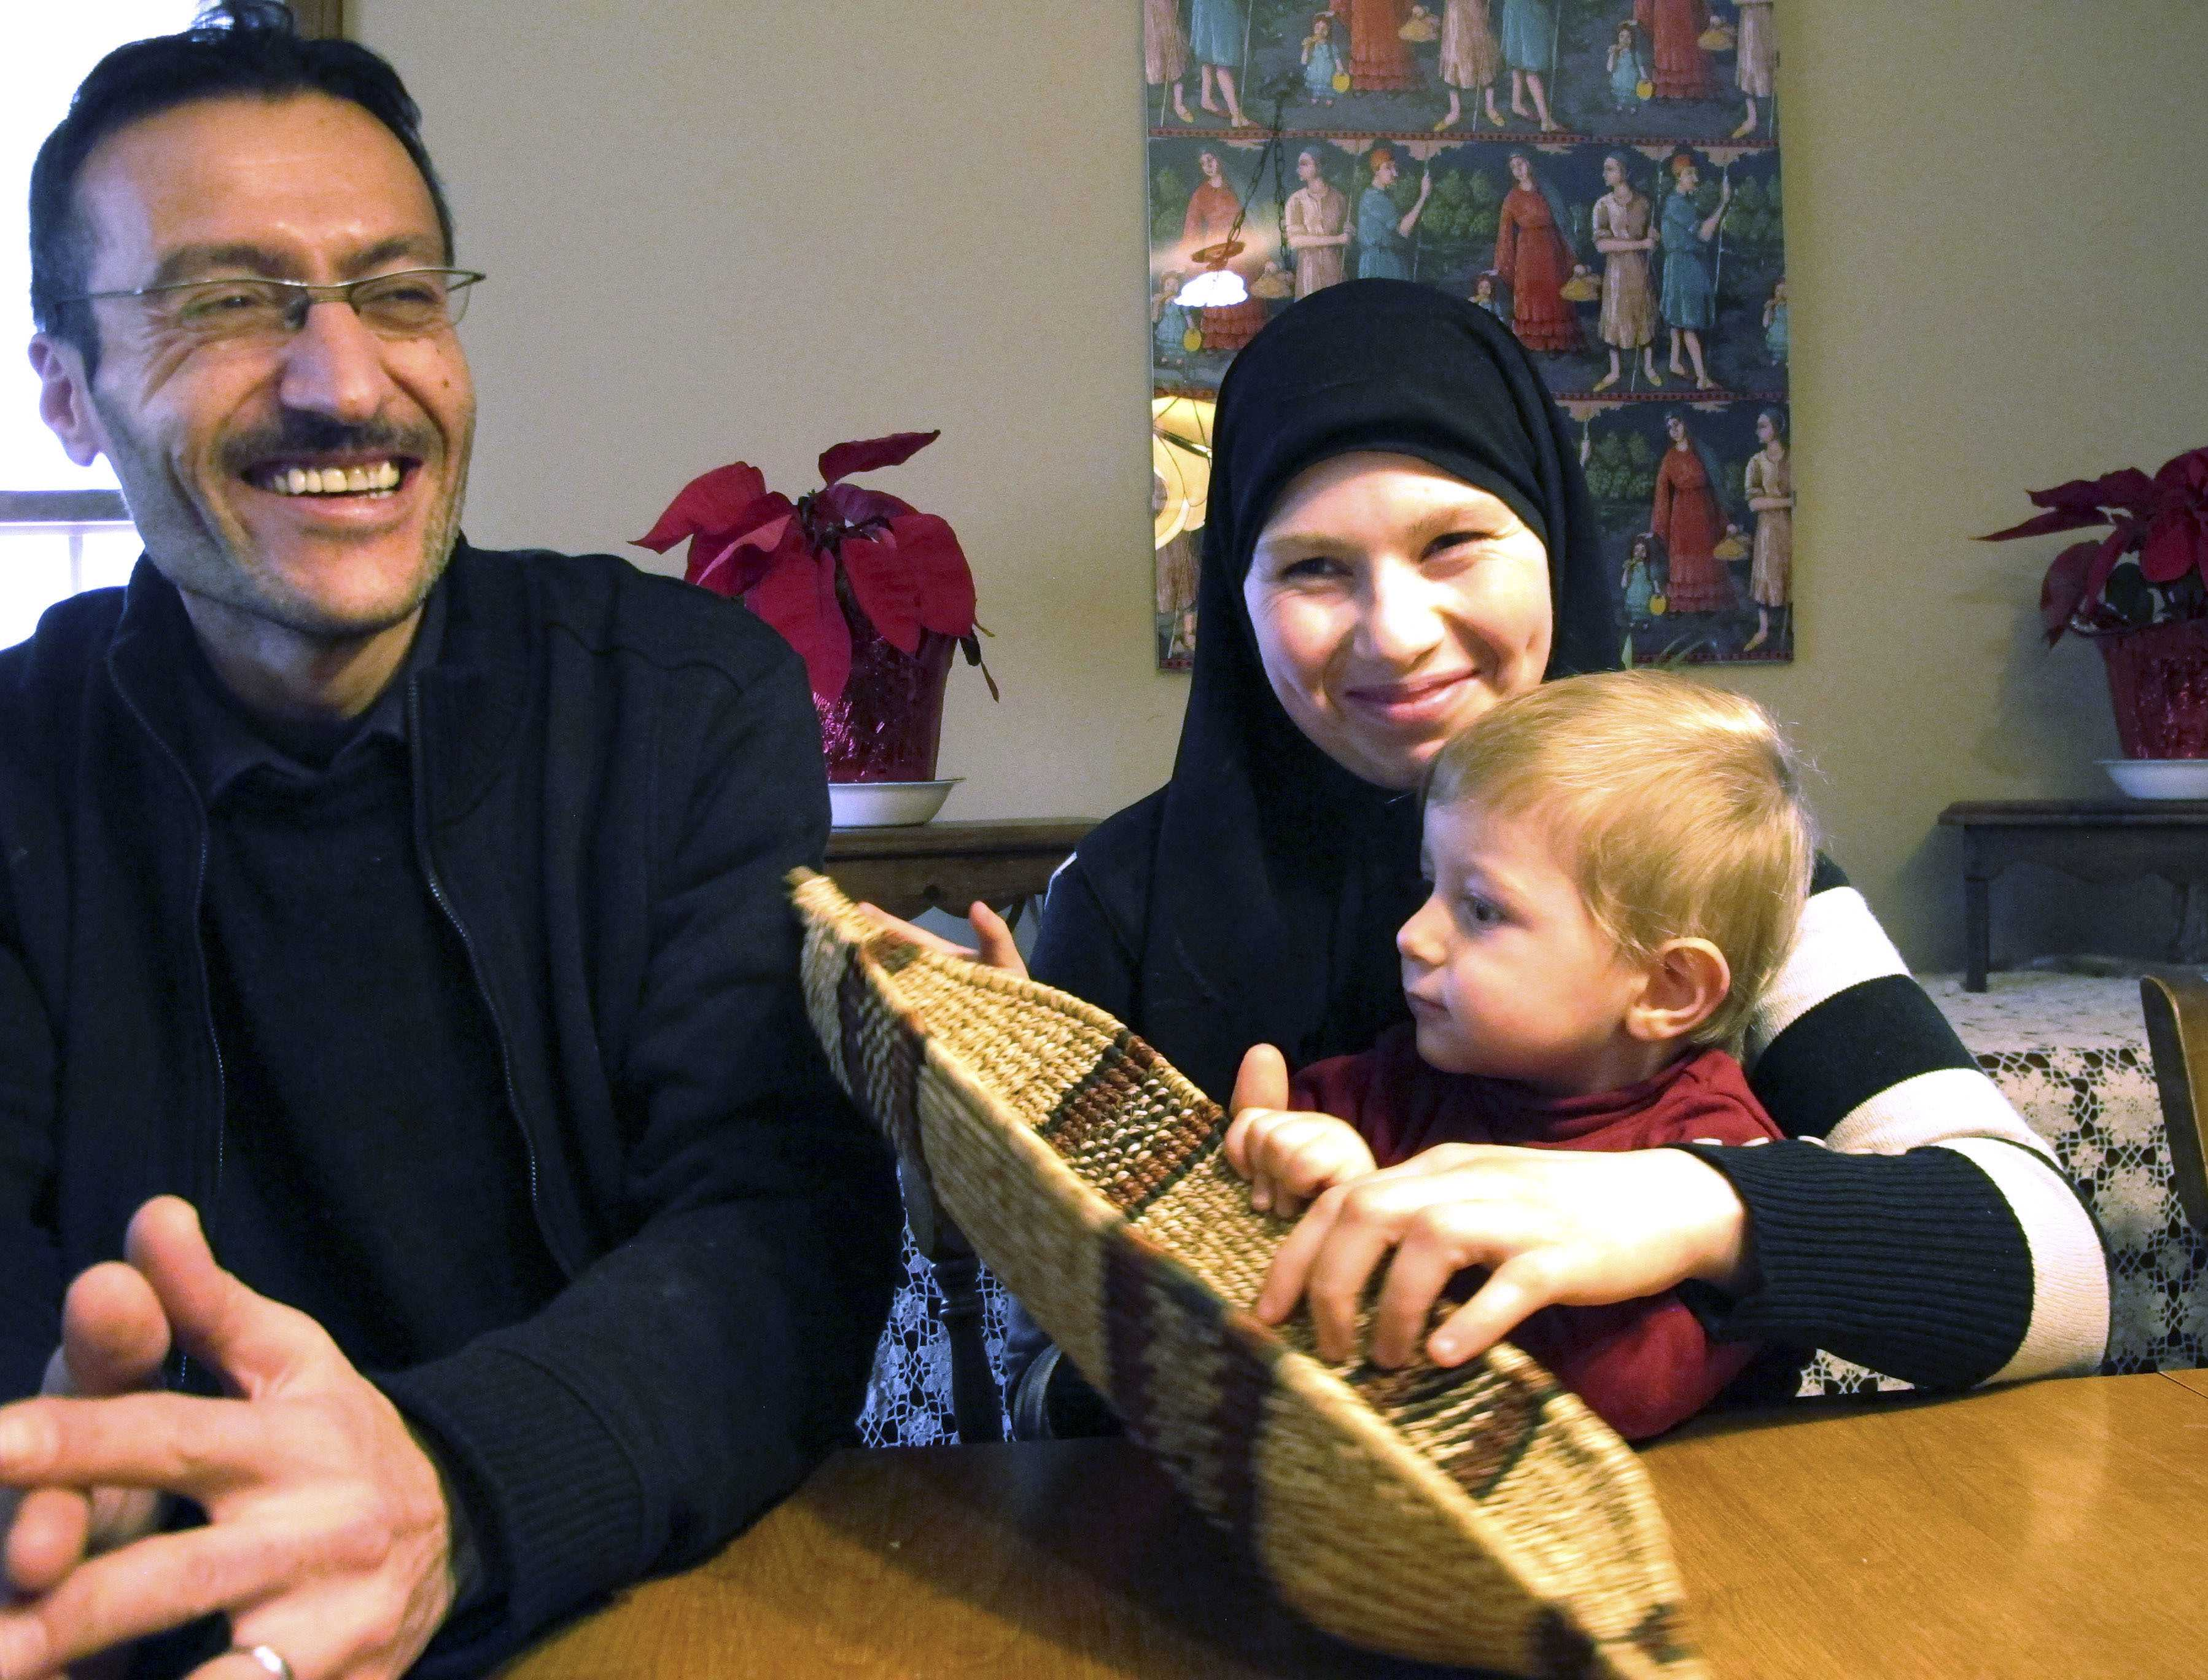 Ahmed Khatib with his wife Mahasen Boshnaq and son Mohammed